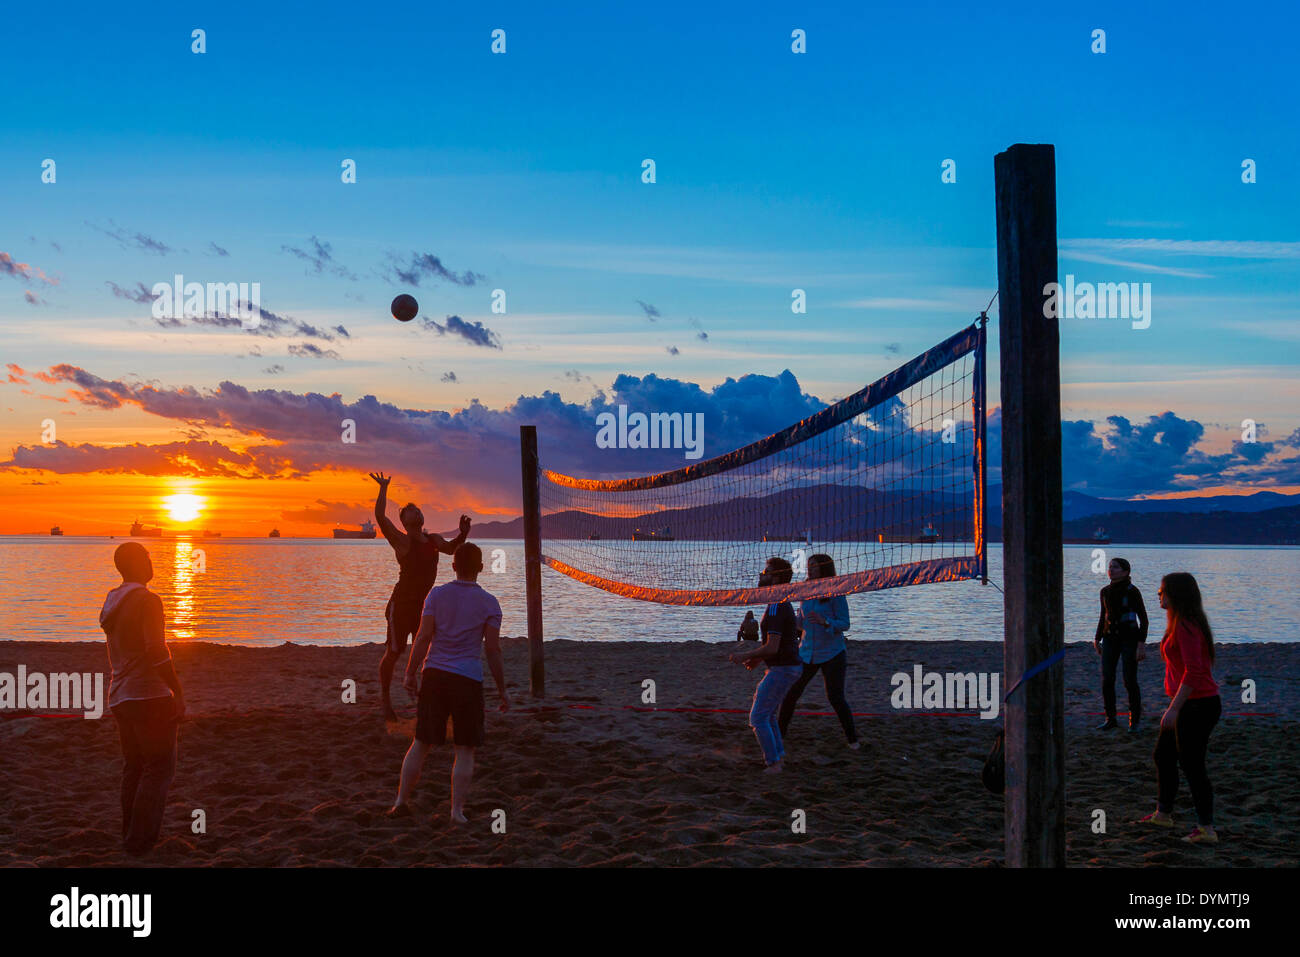 A game of beach volleyball at sunset Beach, English Bay Beach, Vancouver, British Columbia, Canada - Stock Image